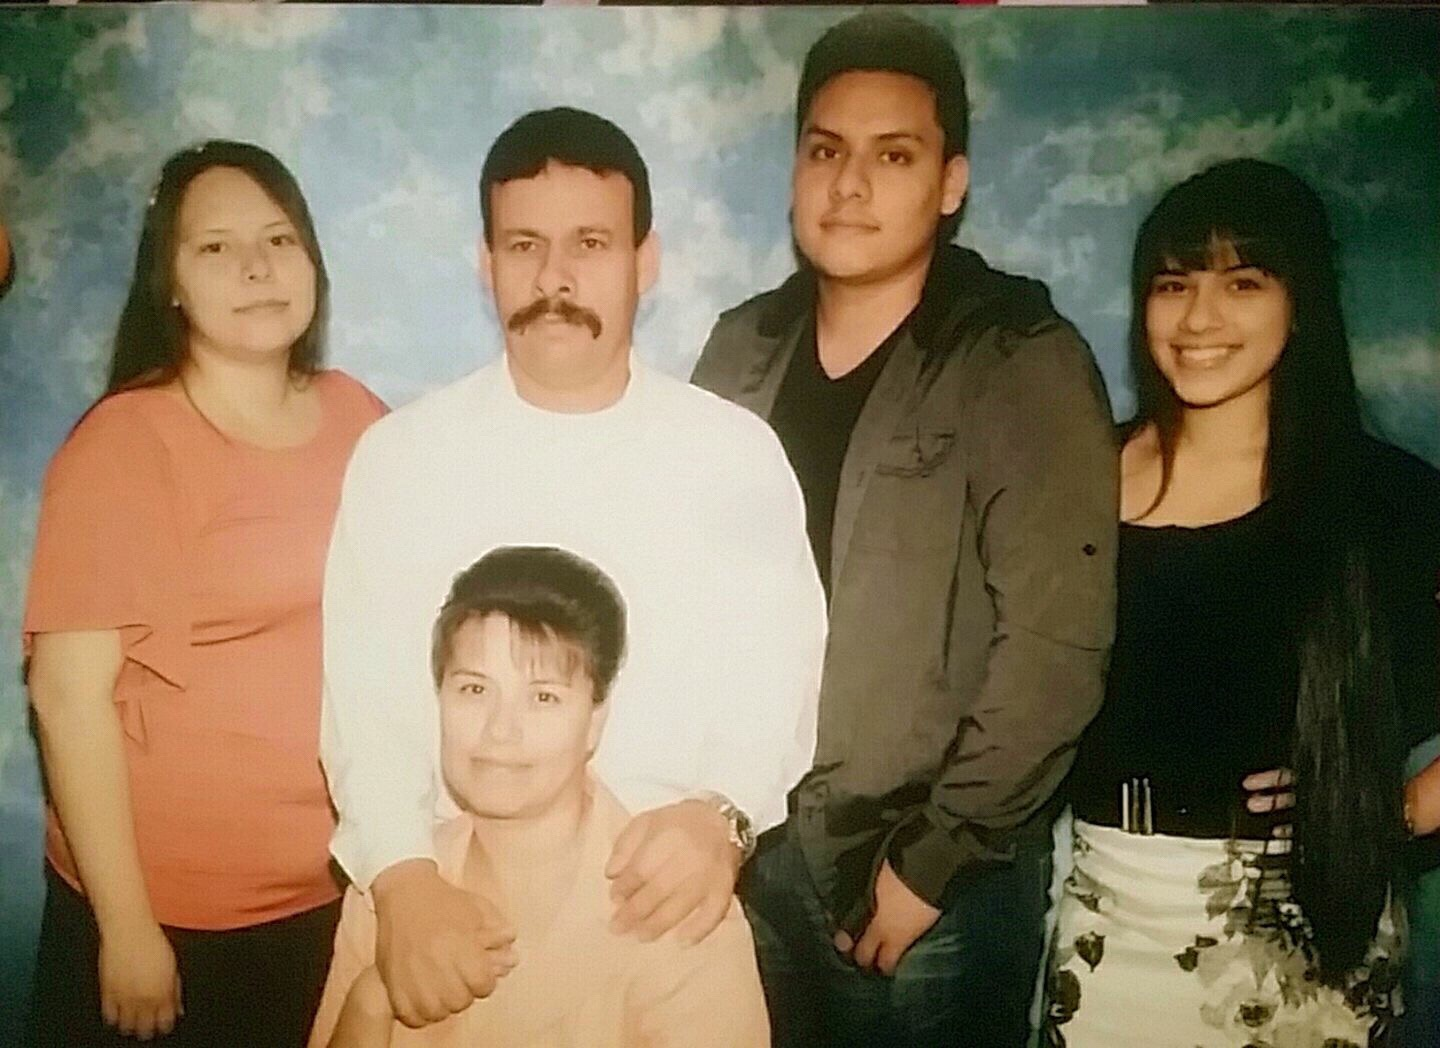 A Deaf Man is Shot, His Family Wants Justice